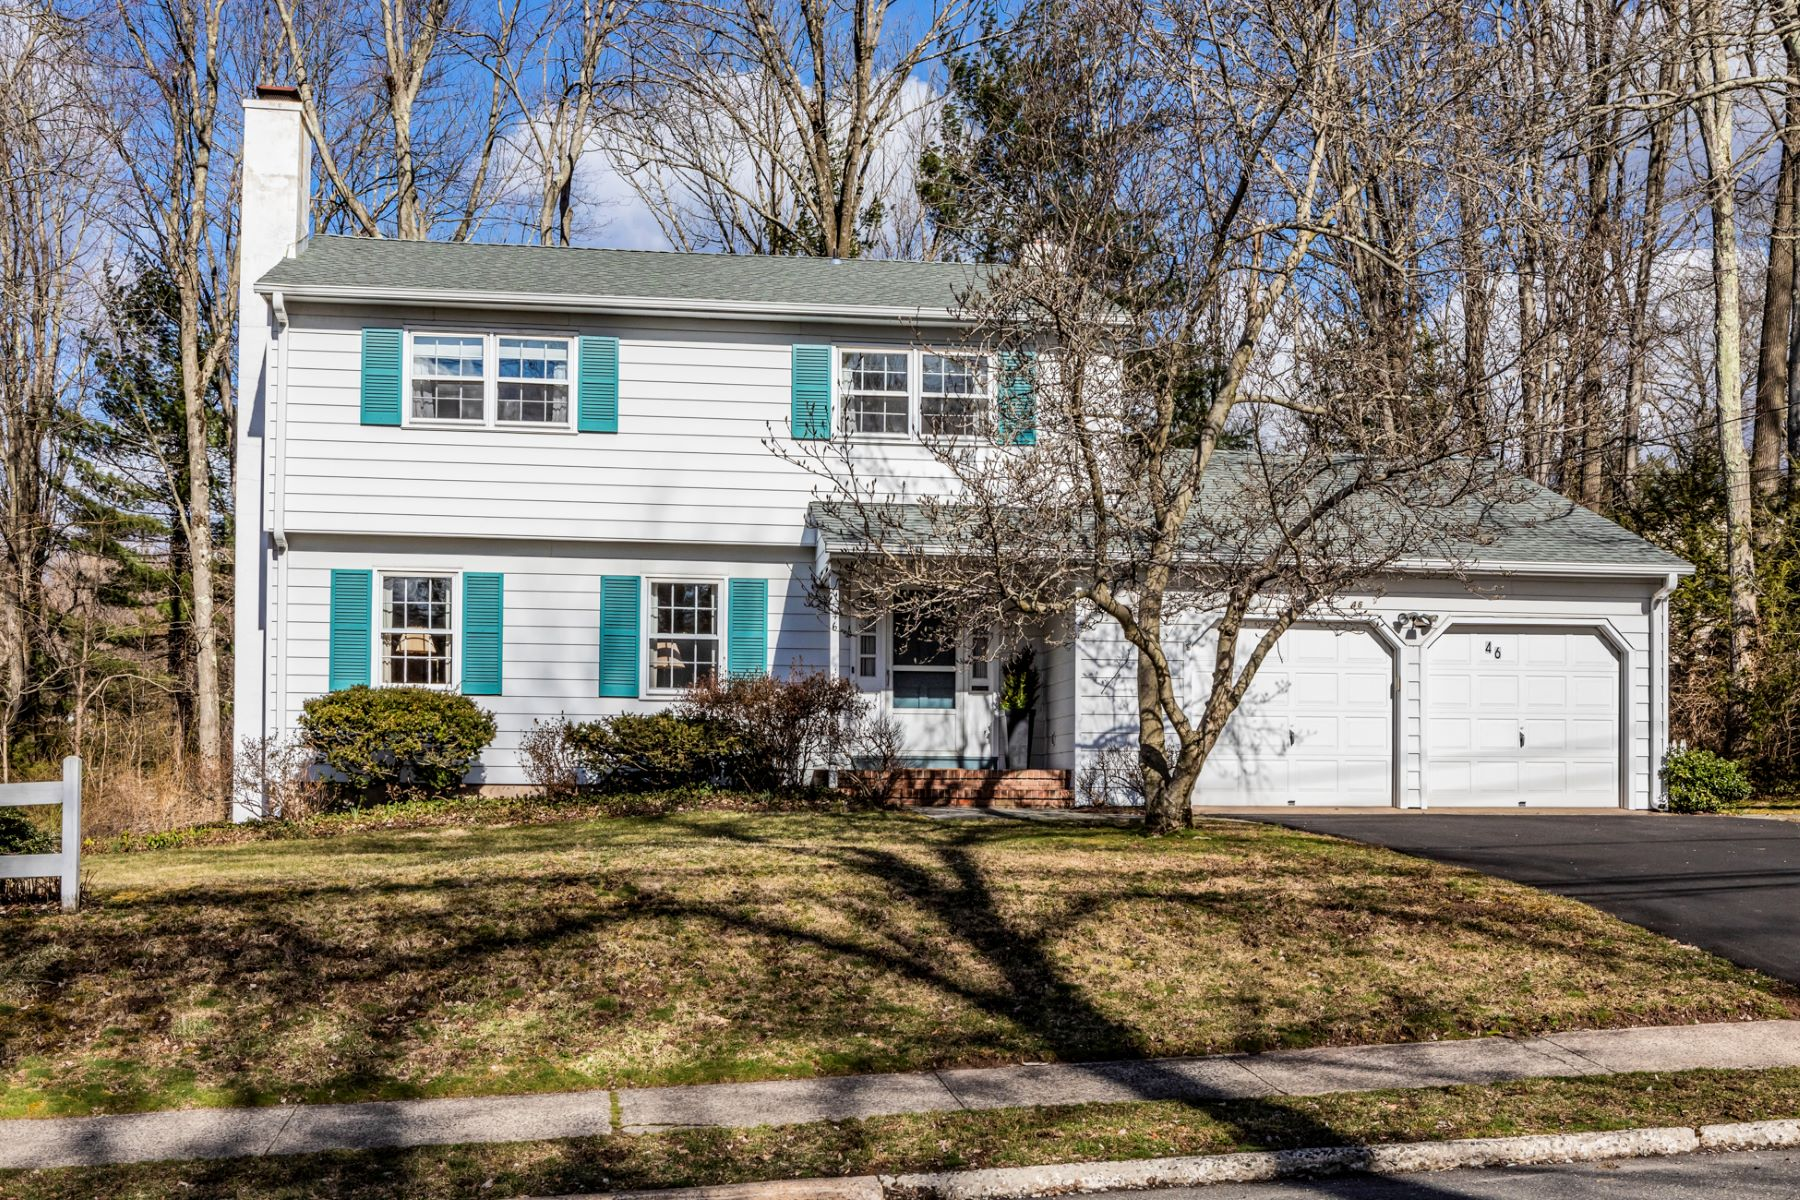 Single Family Home for Sale at Wonderful Practicality and Comfort, Right in Town 46 Terhune Road, Princeton, New Jersey 08540 United States